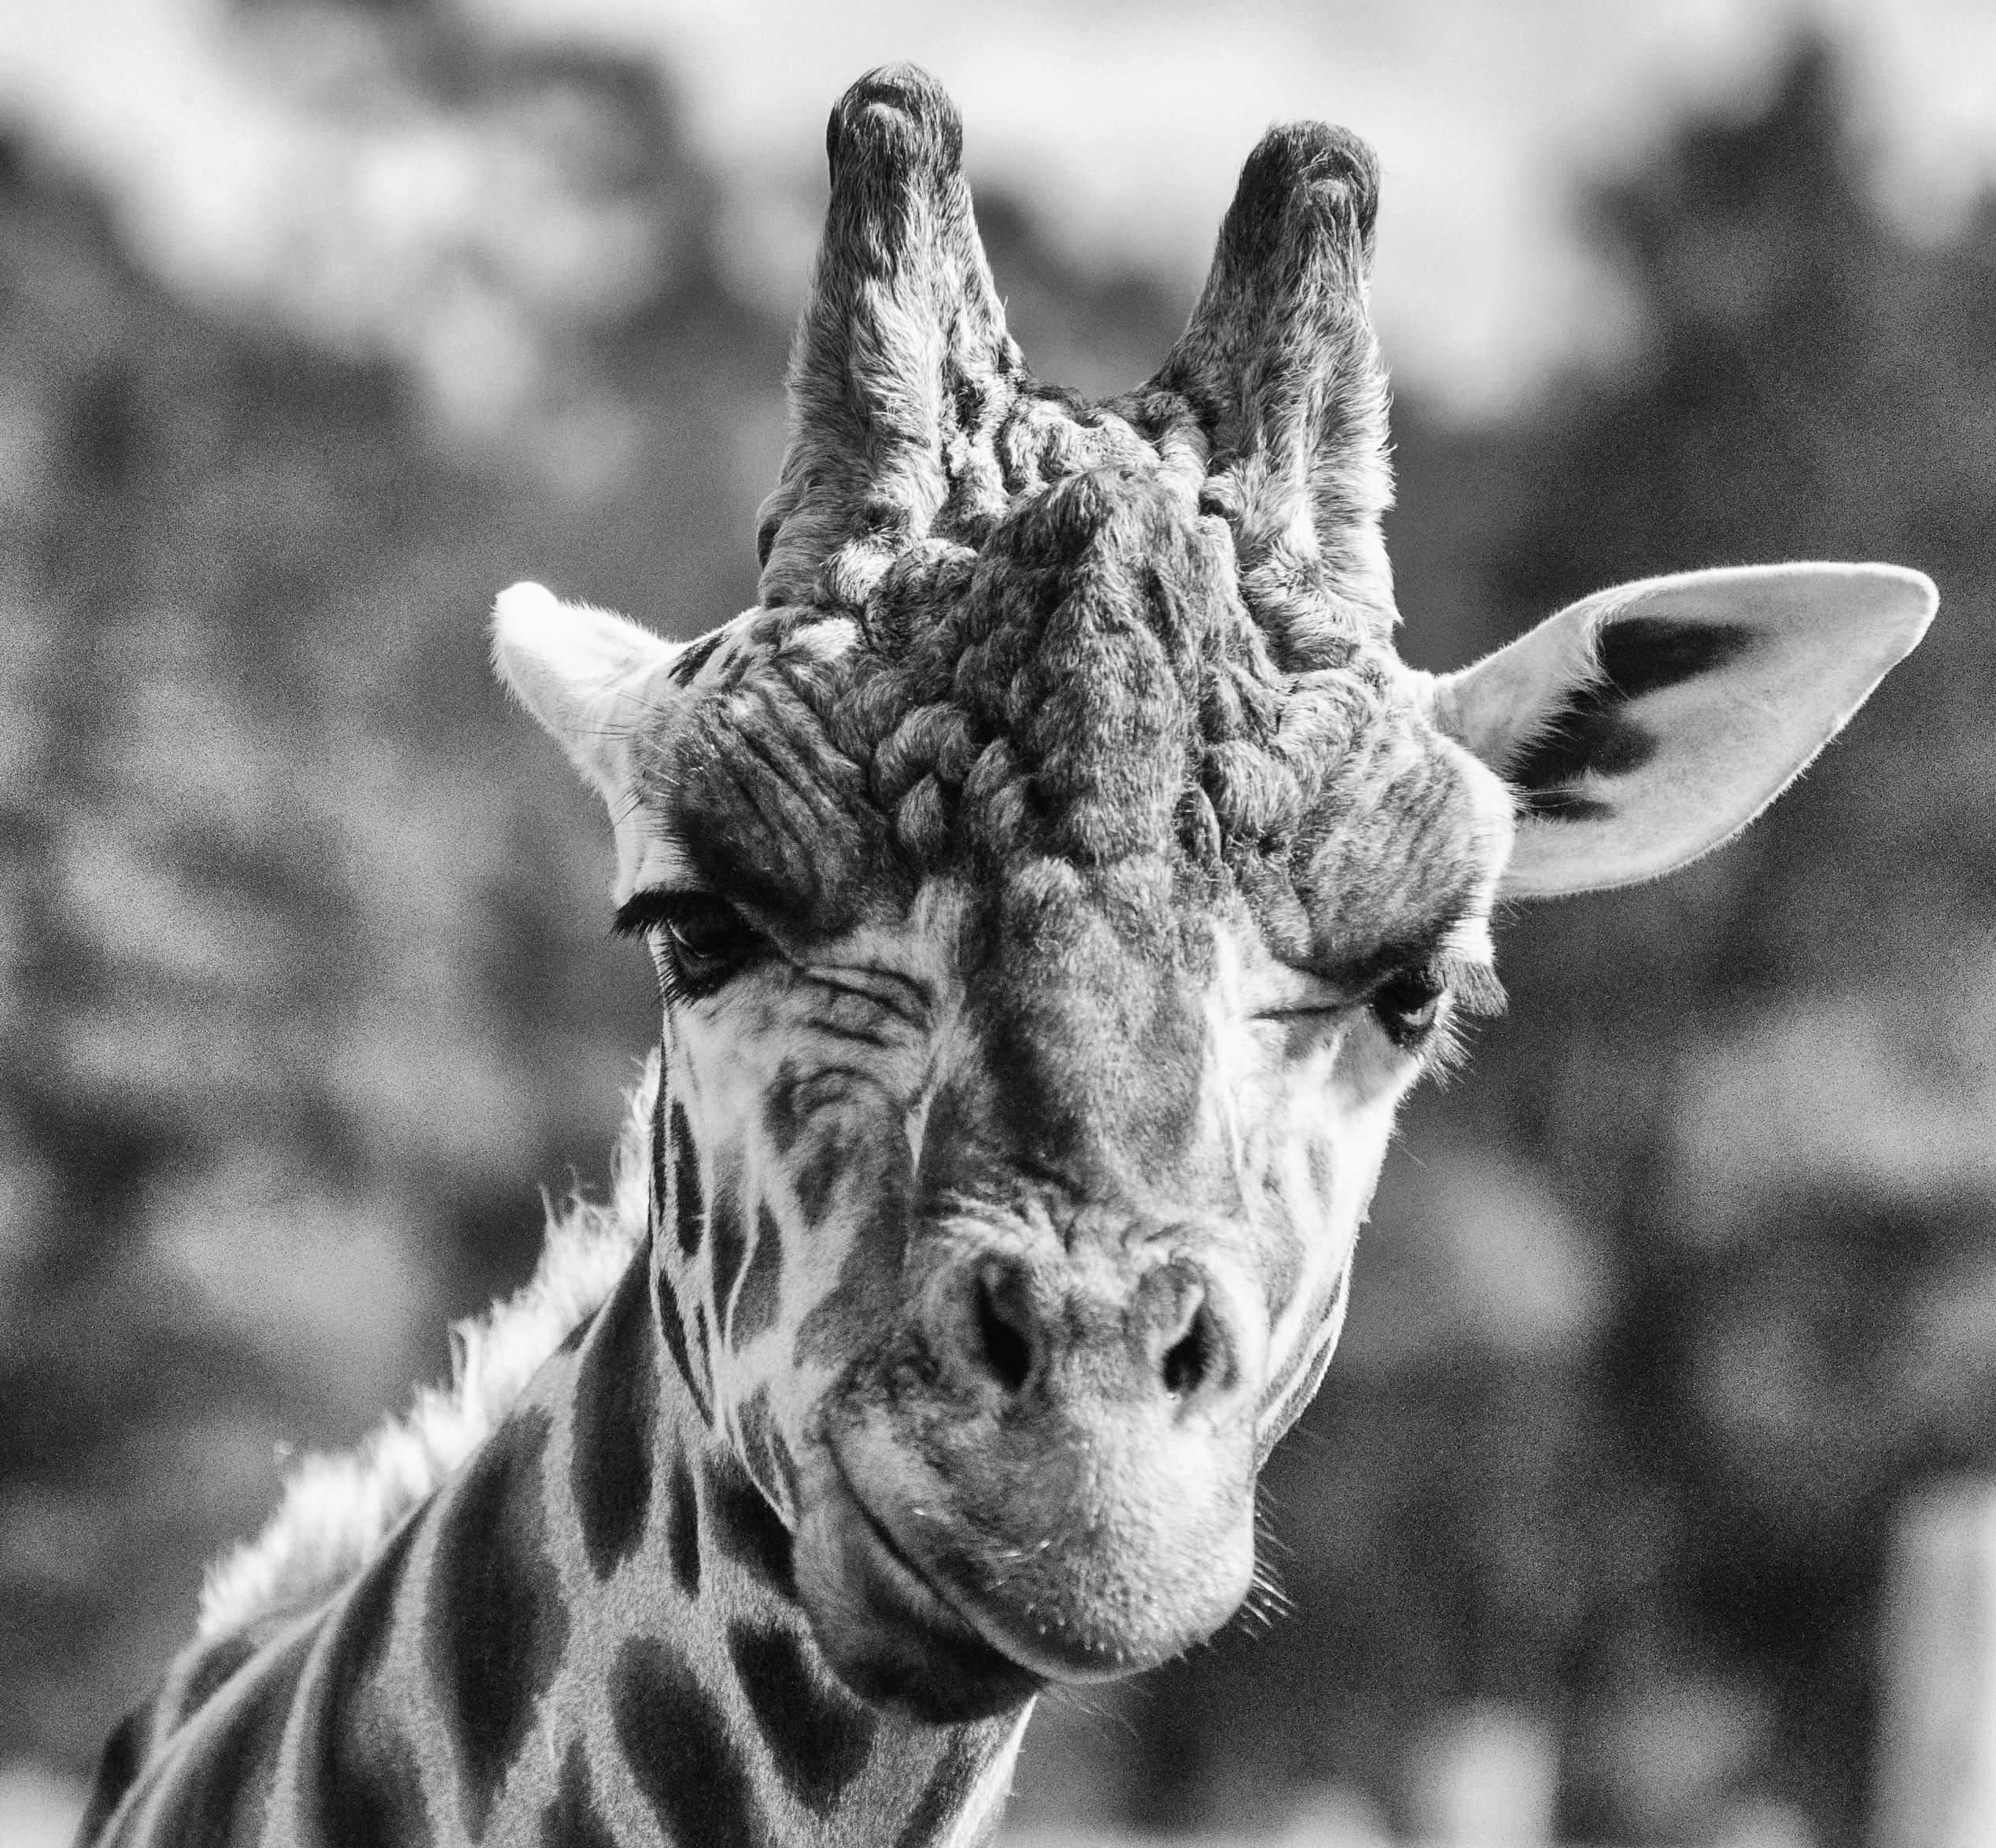 grayscale photography of giraffe face